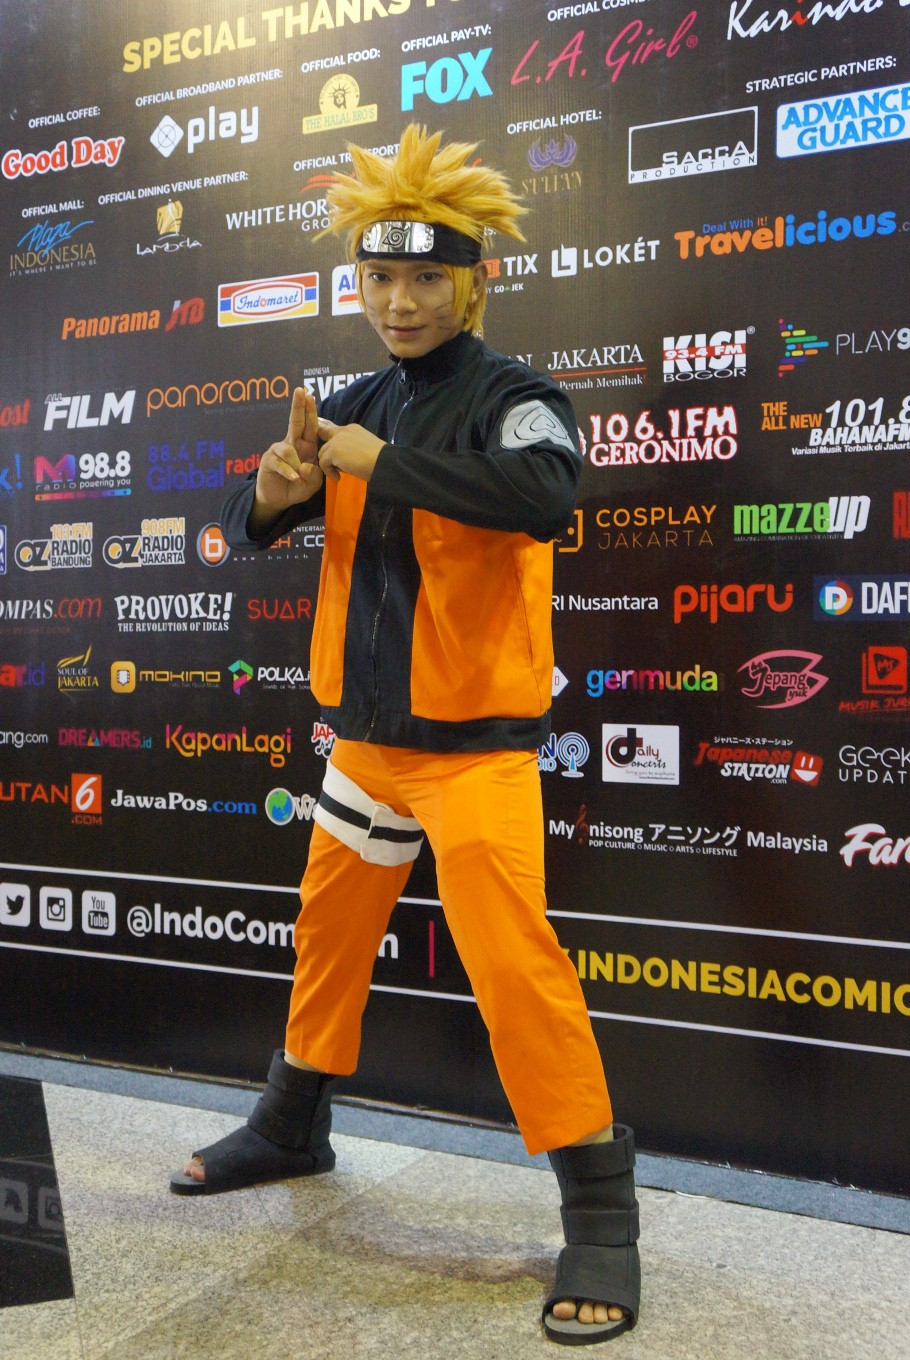 A man dressed as Naruto from 'Naruto Shippuden' strikes a pose during the 2017 Indonesia Comic Con.